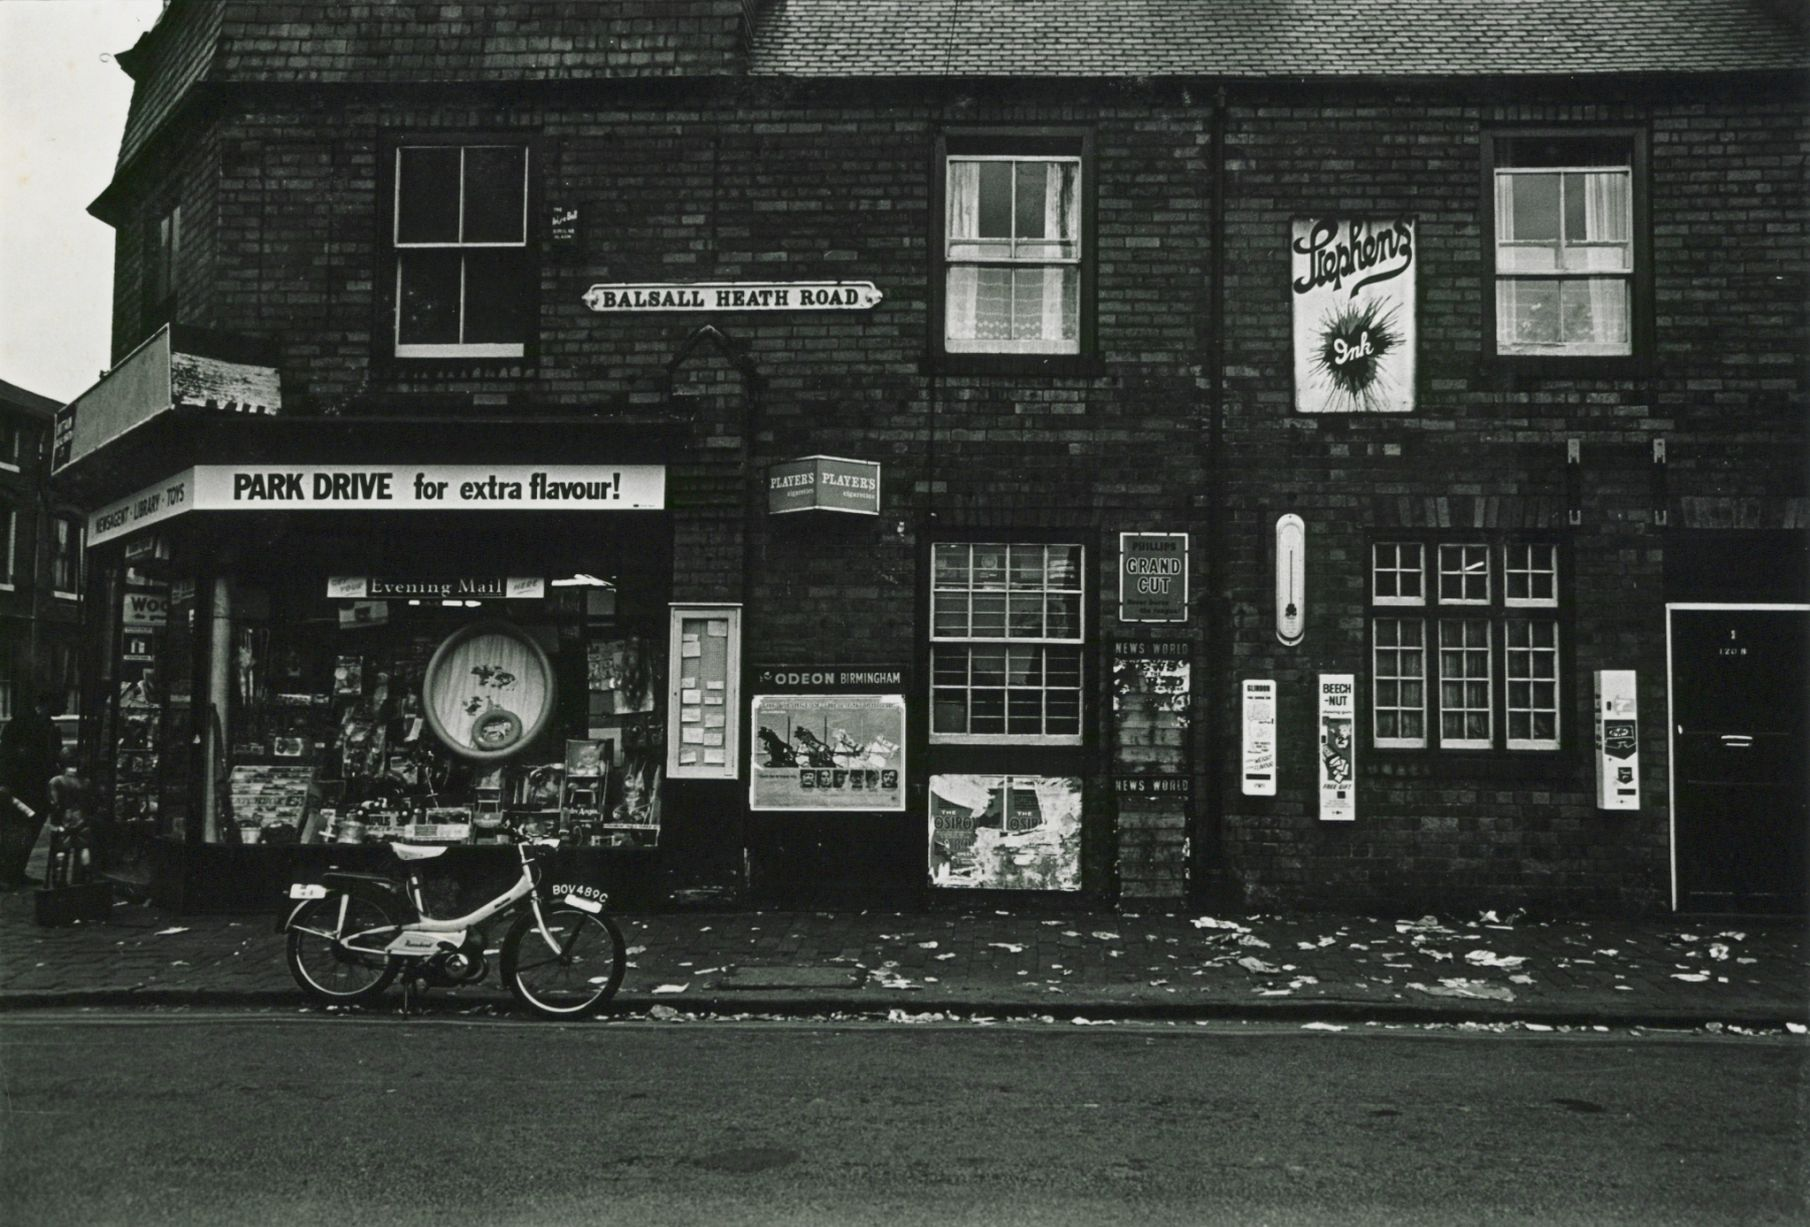 Ballsall Health, Birmingham, UK, 1968